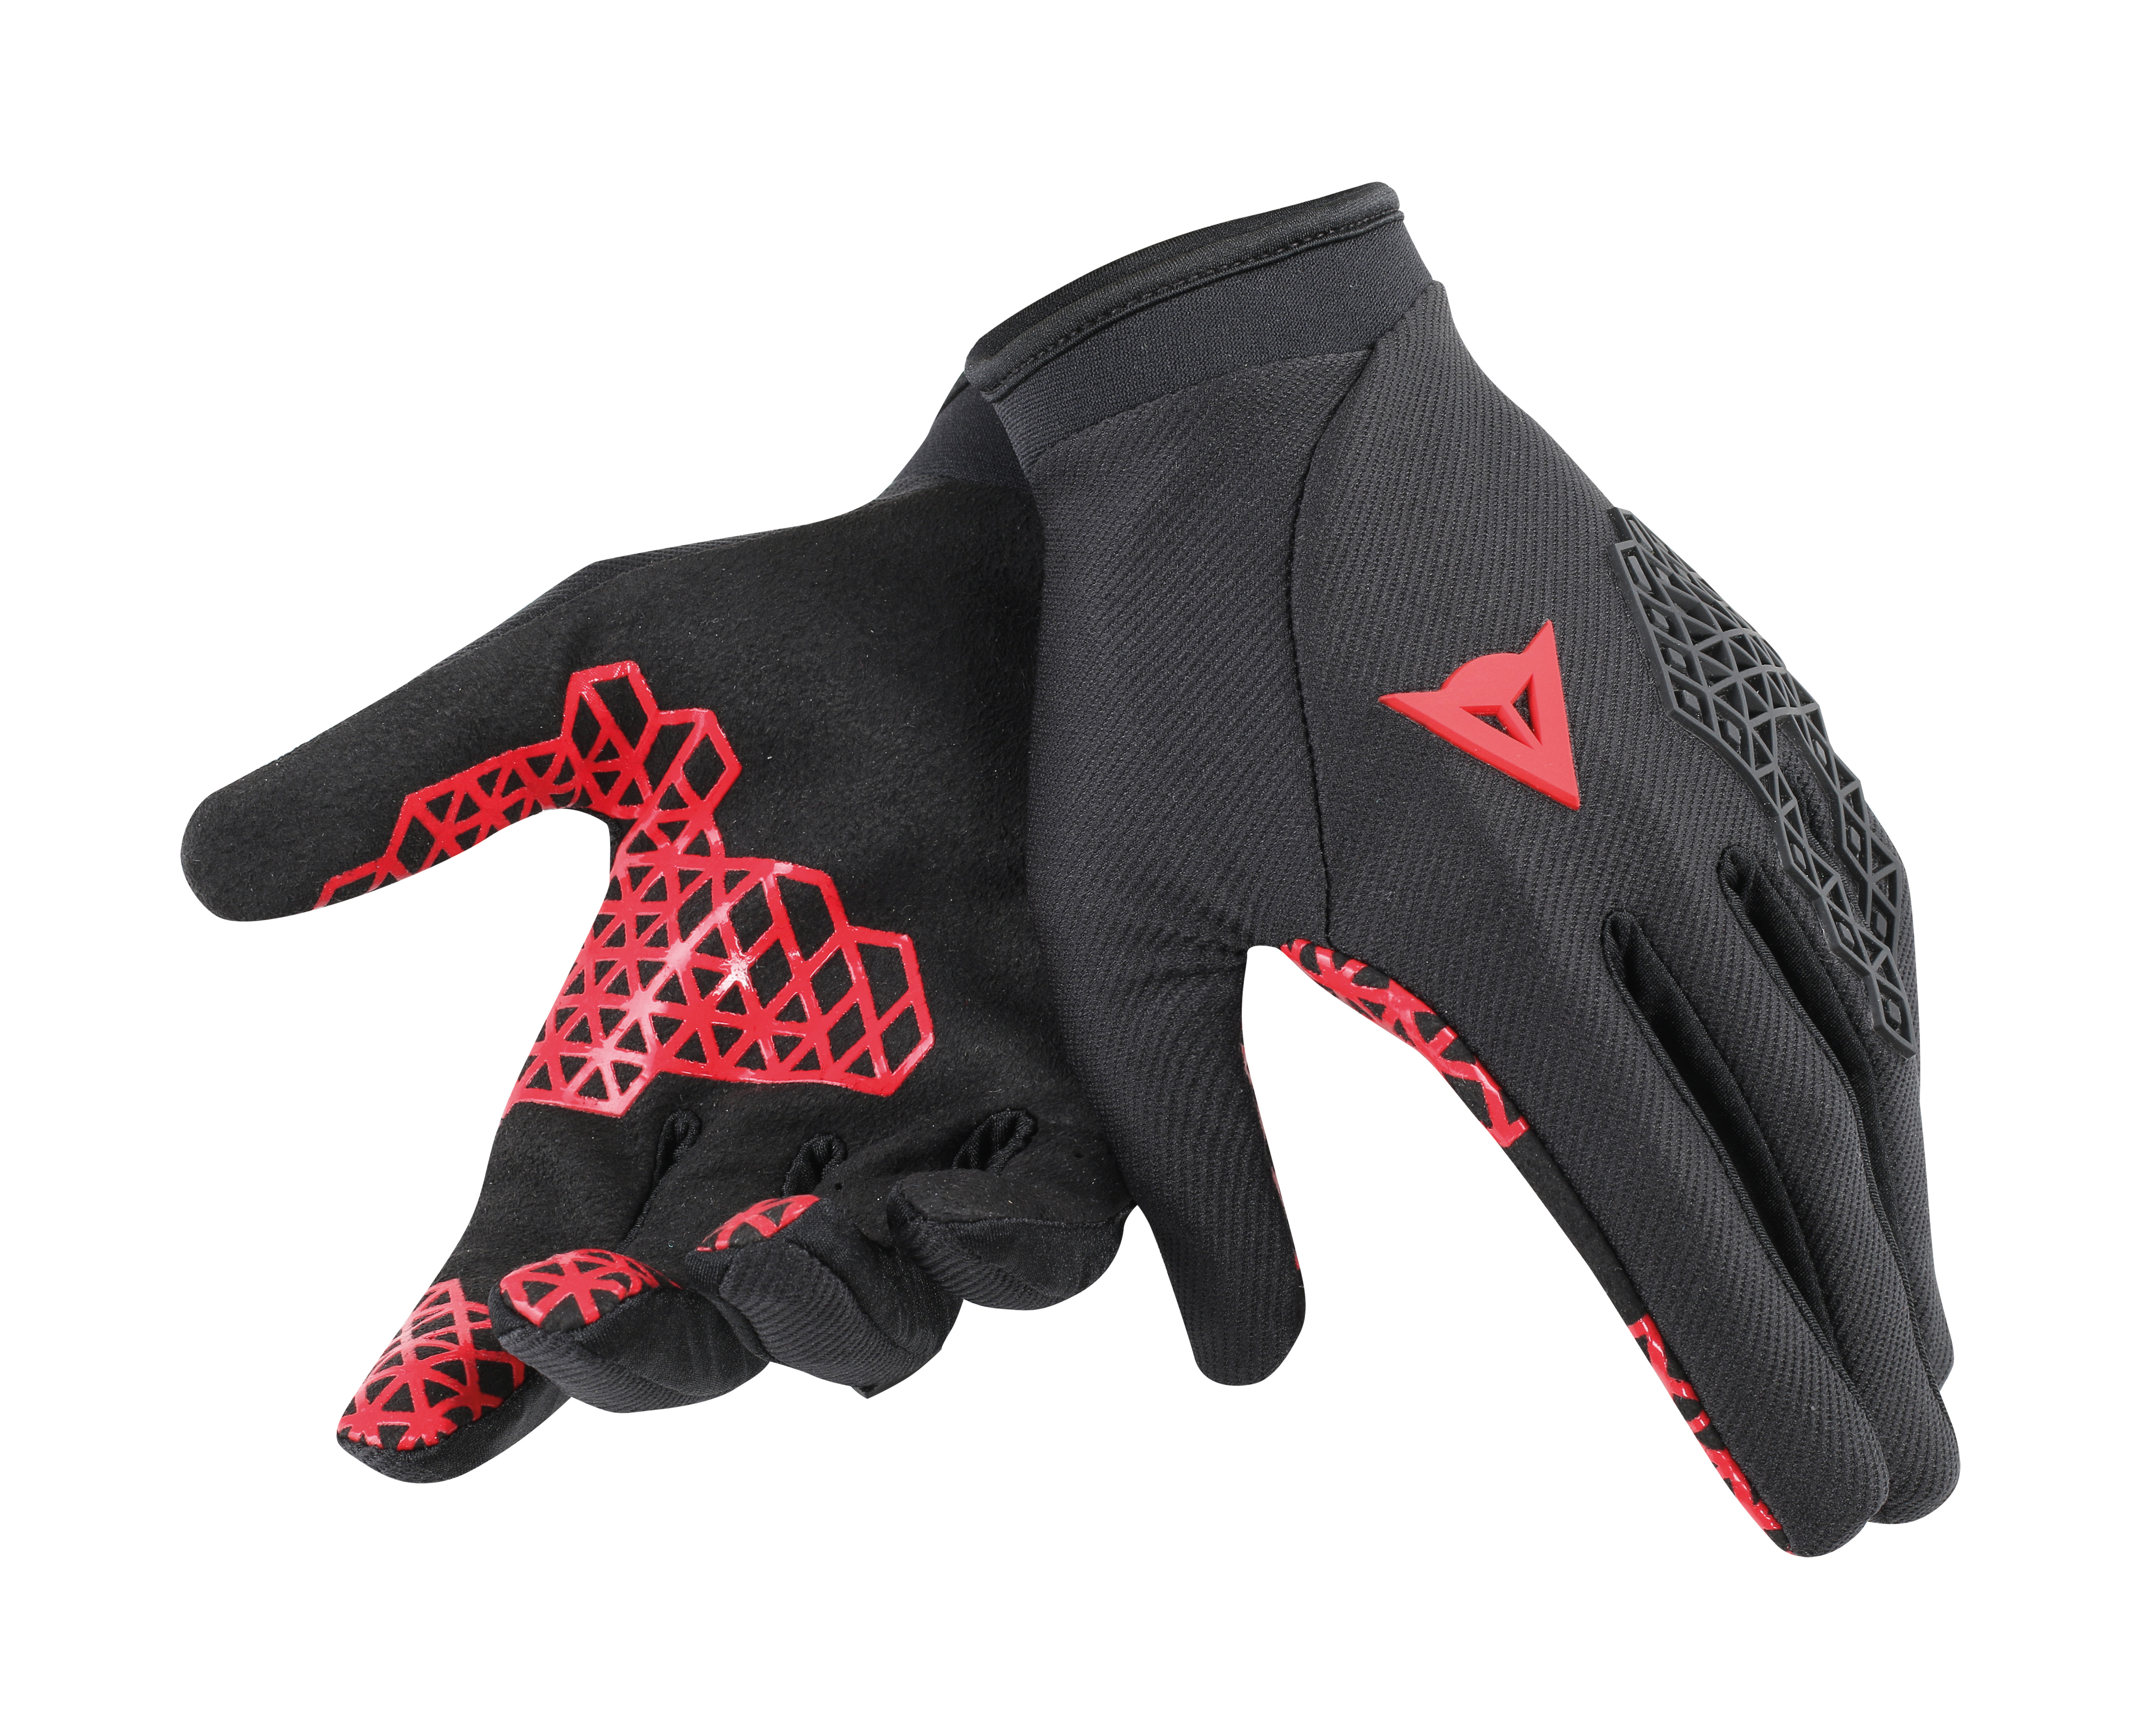 Dainese-Tactic-Gloves-Black-amp-Red-S